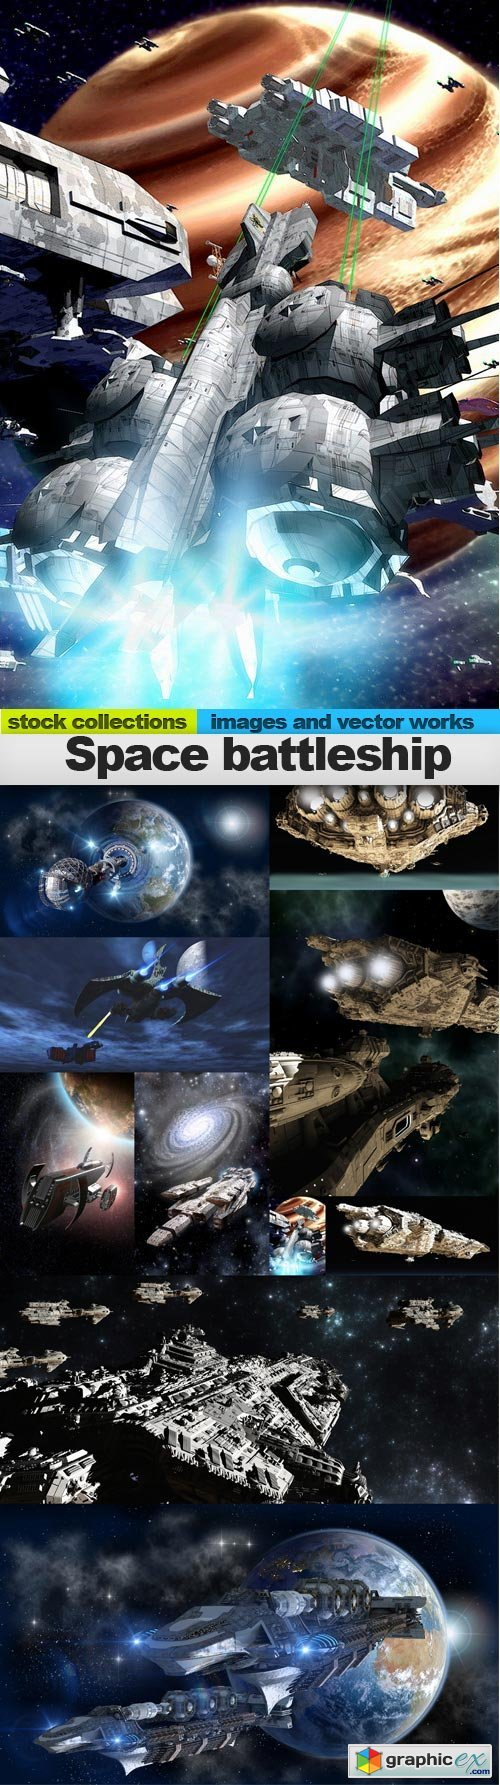 Space battleship, 10 x UHQ JPEG